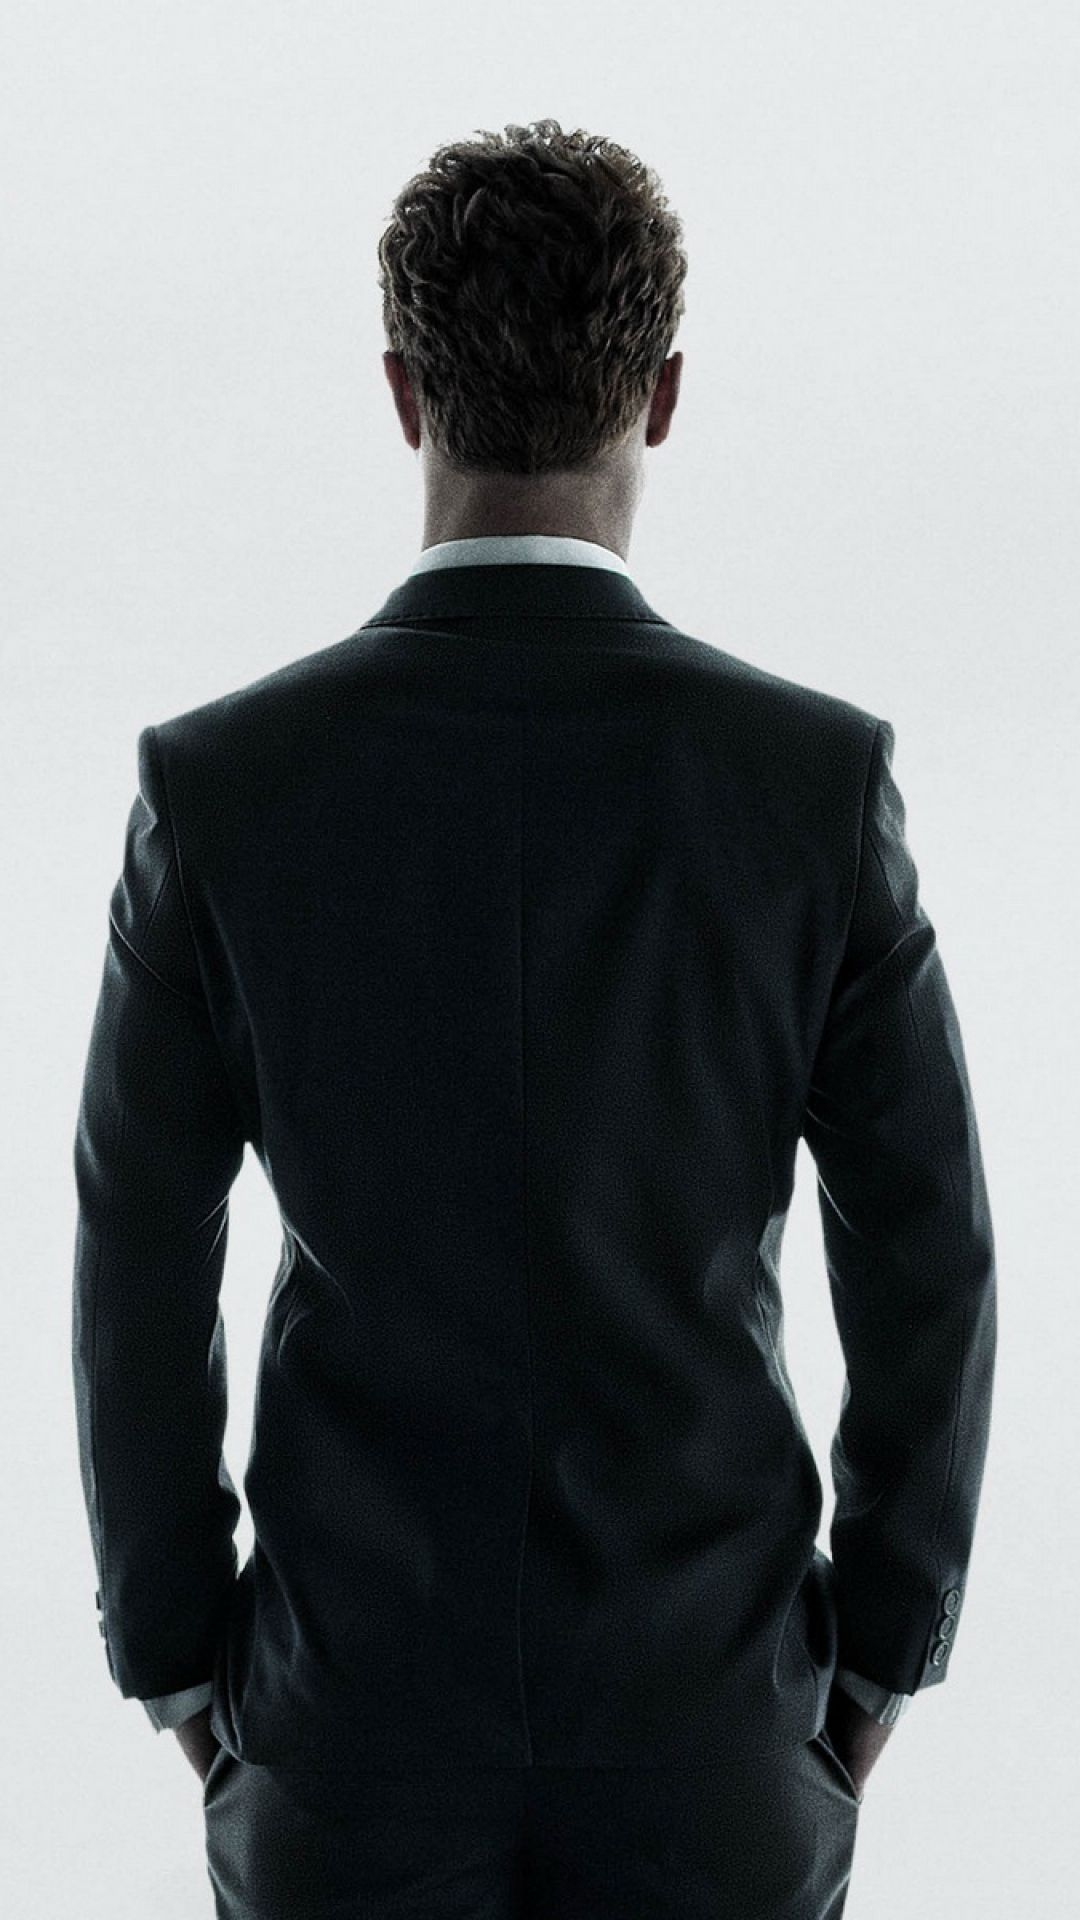 Tap and get the free app movies fifty shades of grey - Fifty shades of grey movie wallpaper ...